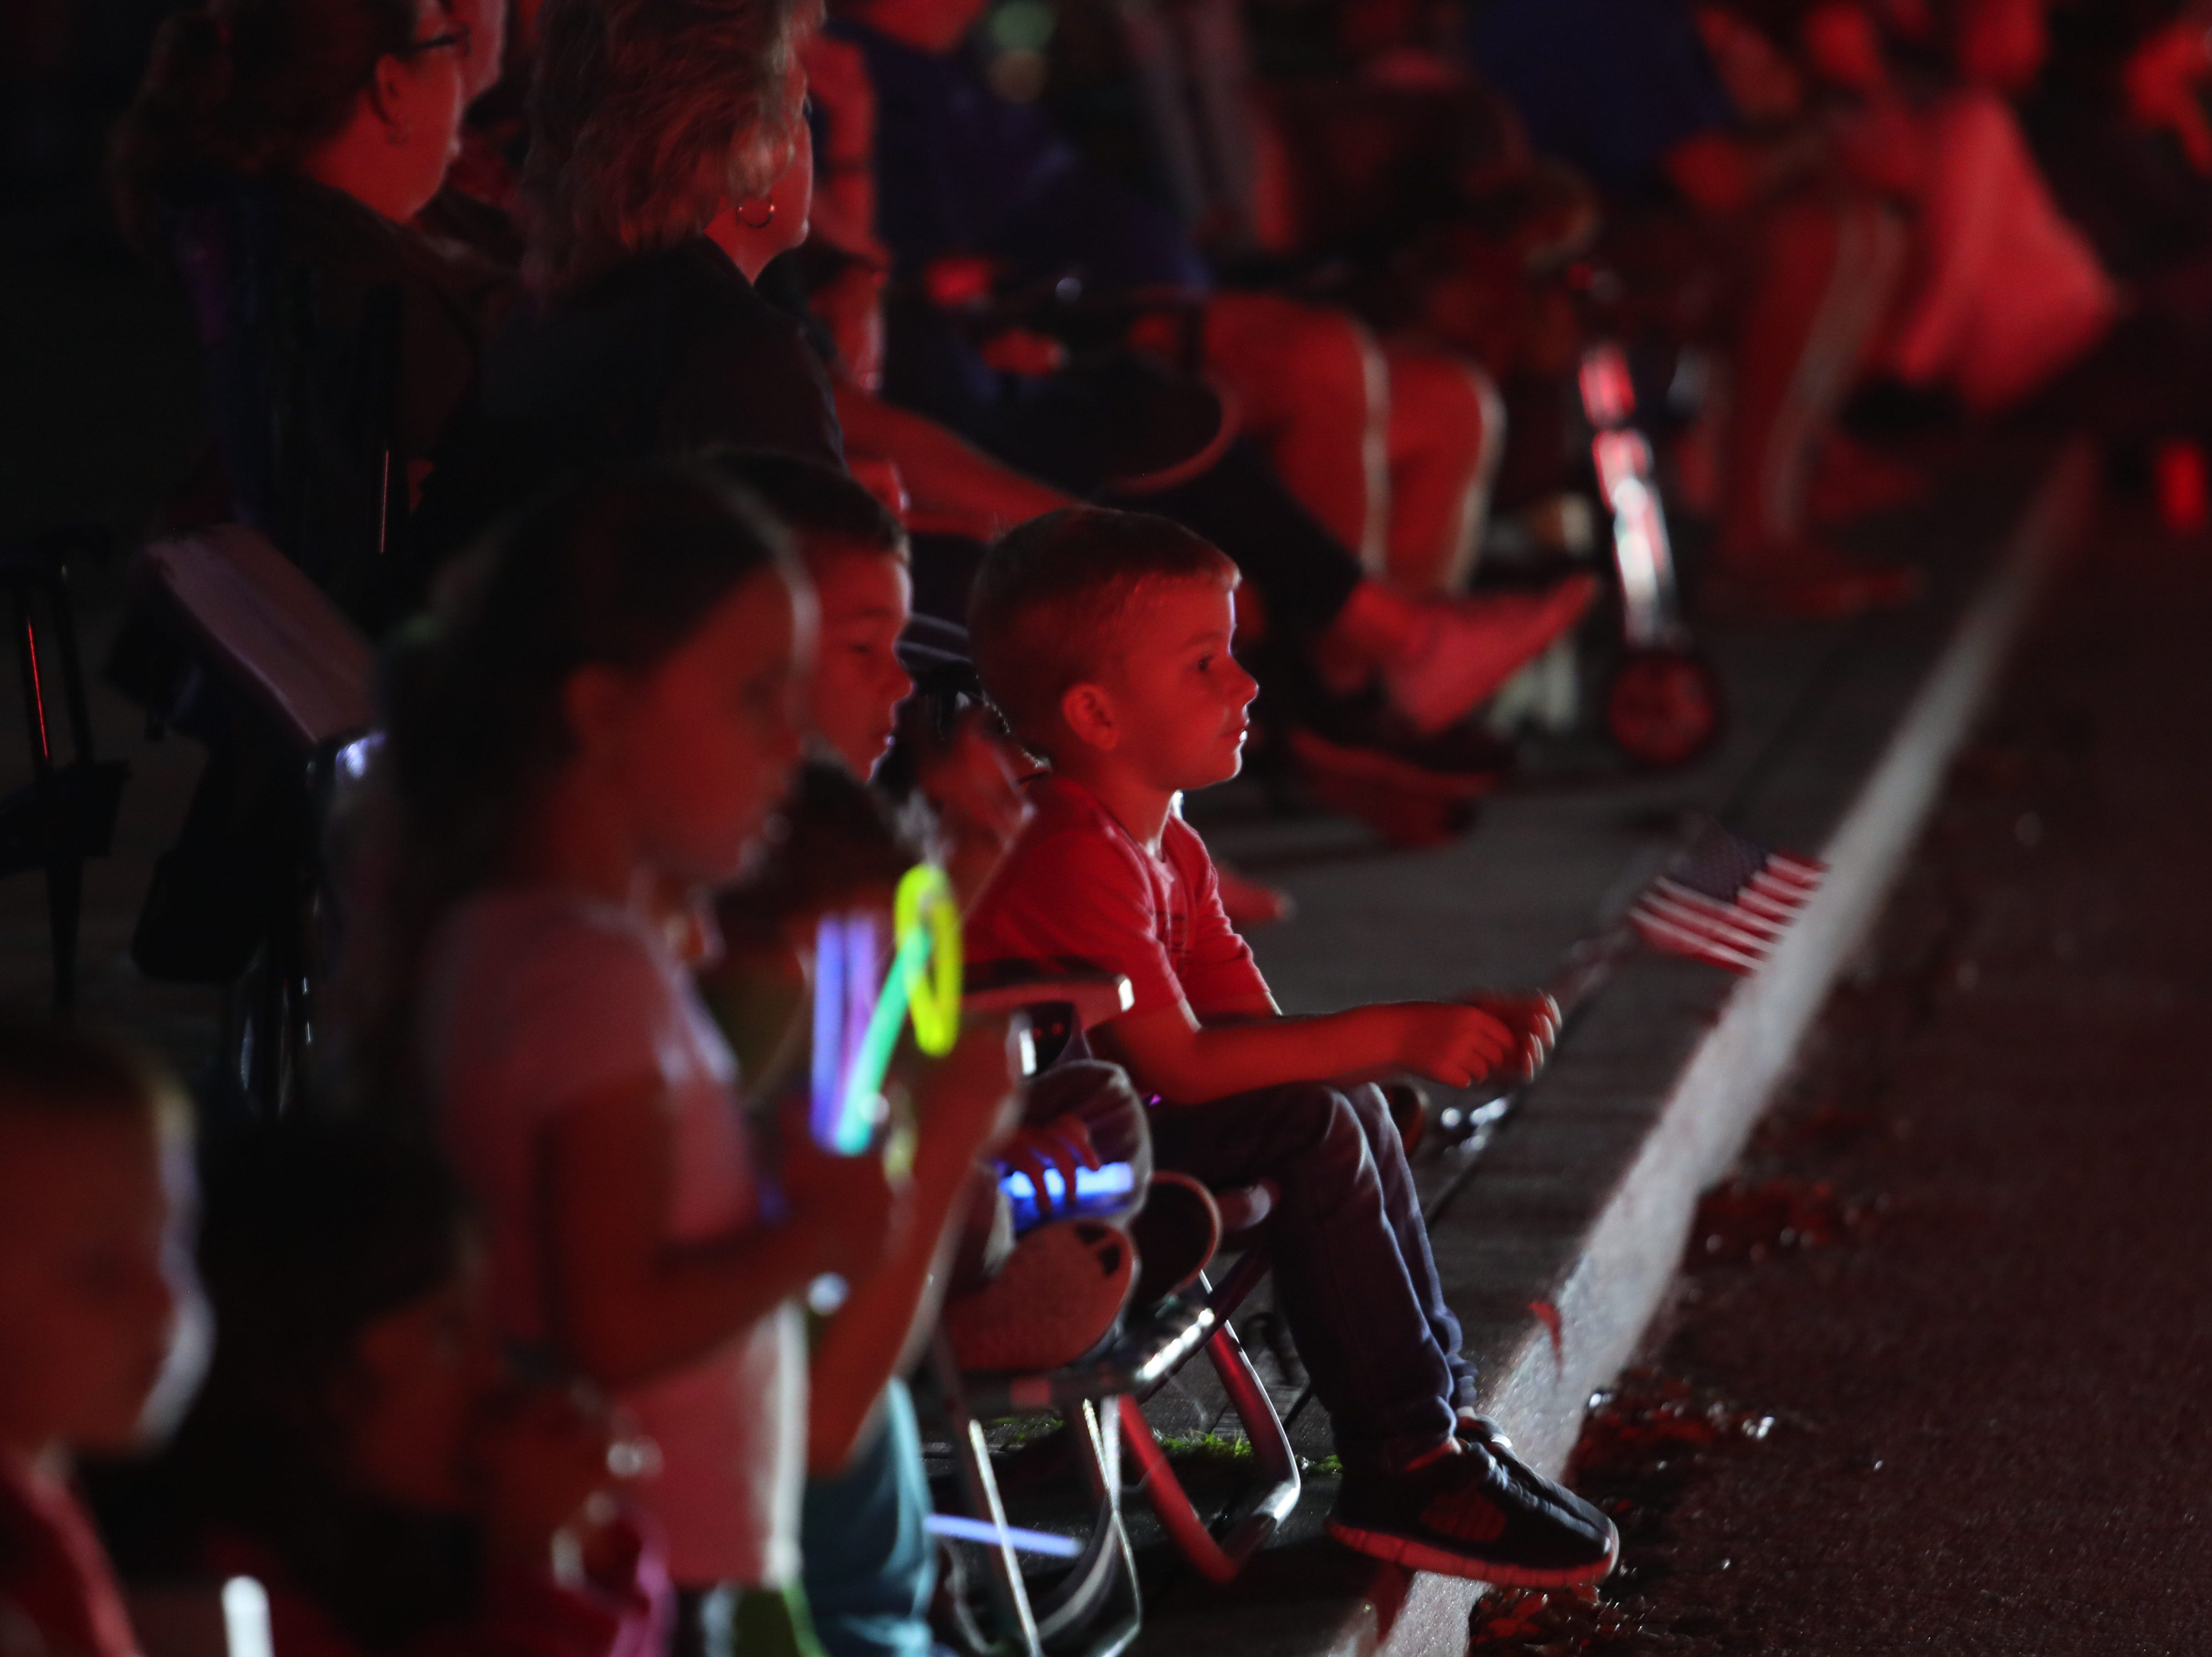 Spectators watch the Edison Festival of Light Grand Parade move along Cortez Boulevard in Fort Myers on Saturday, Feb. 16, 2019.